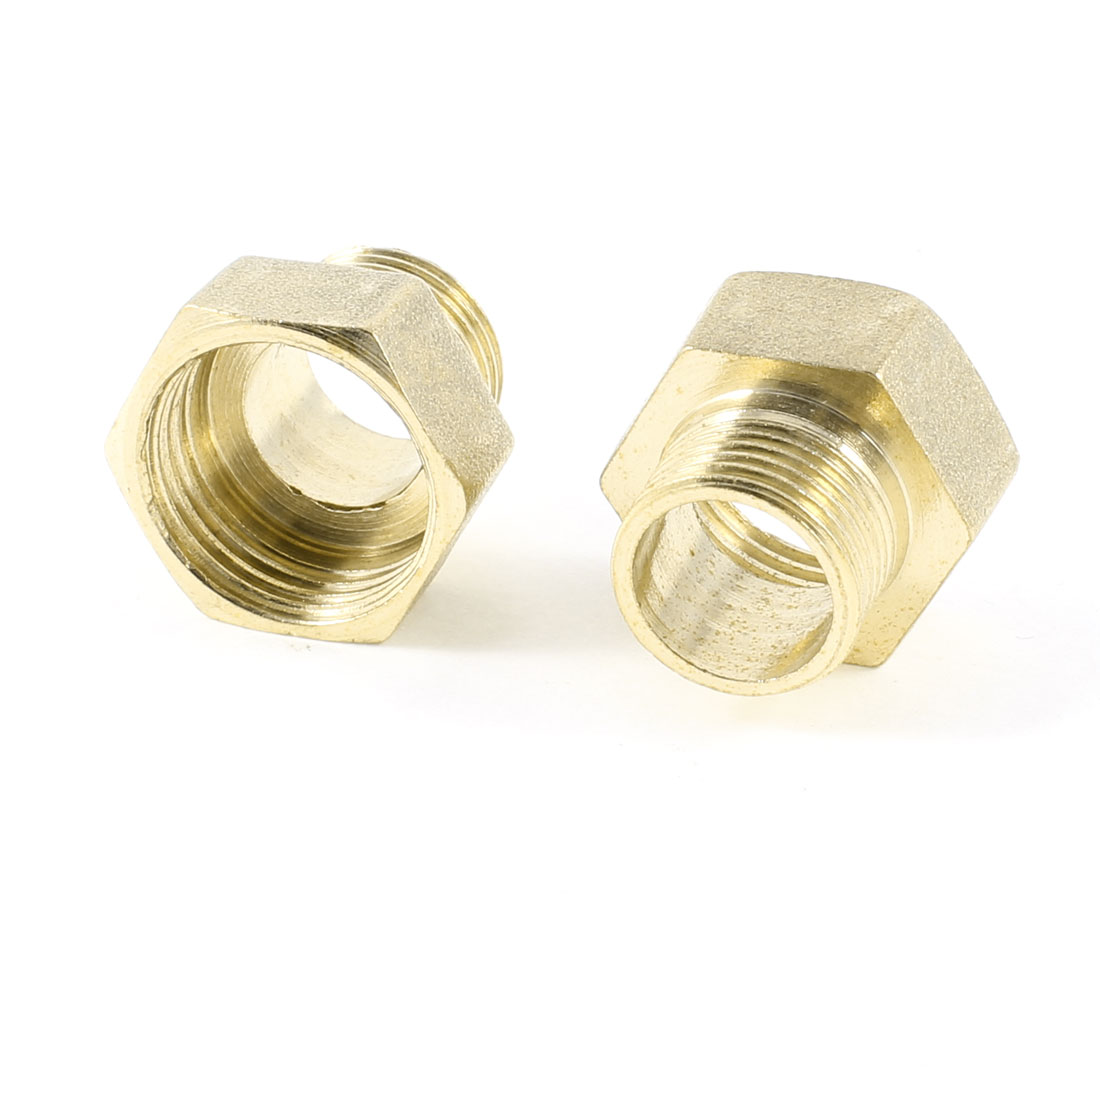 16mm to 19mm Male/Female Thread Hex Nipples Brass Connector Couplers 2 Pcs